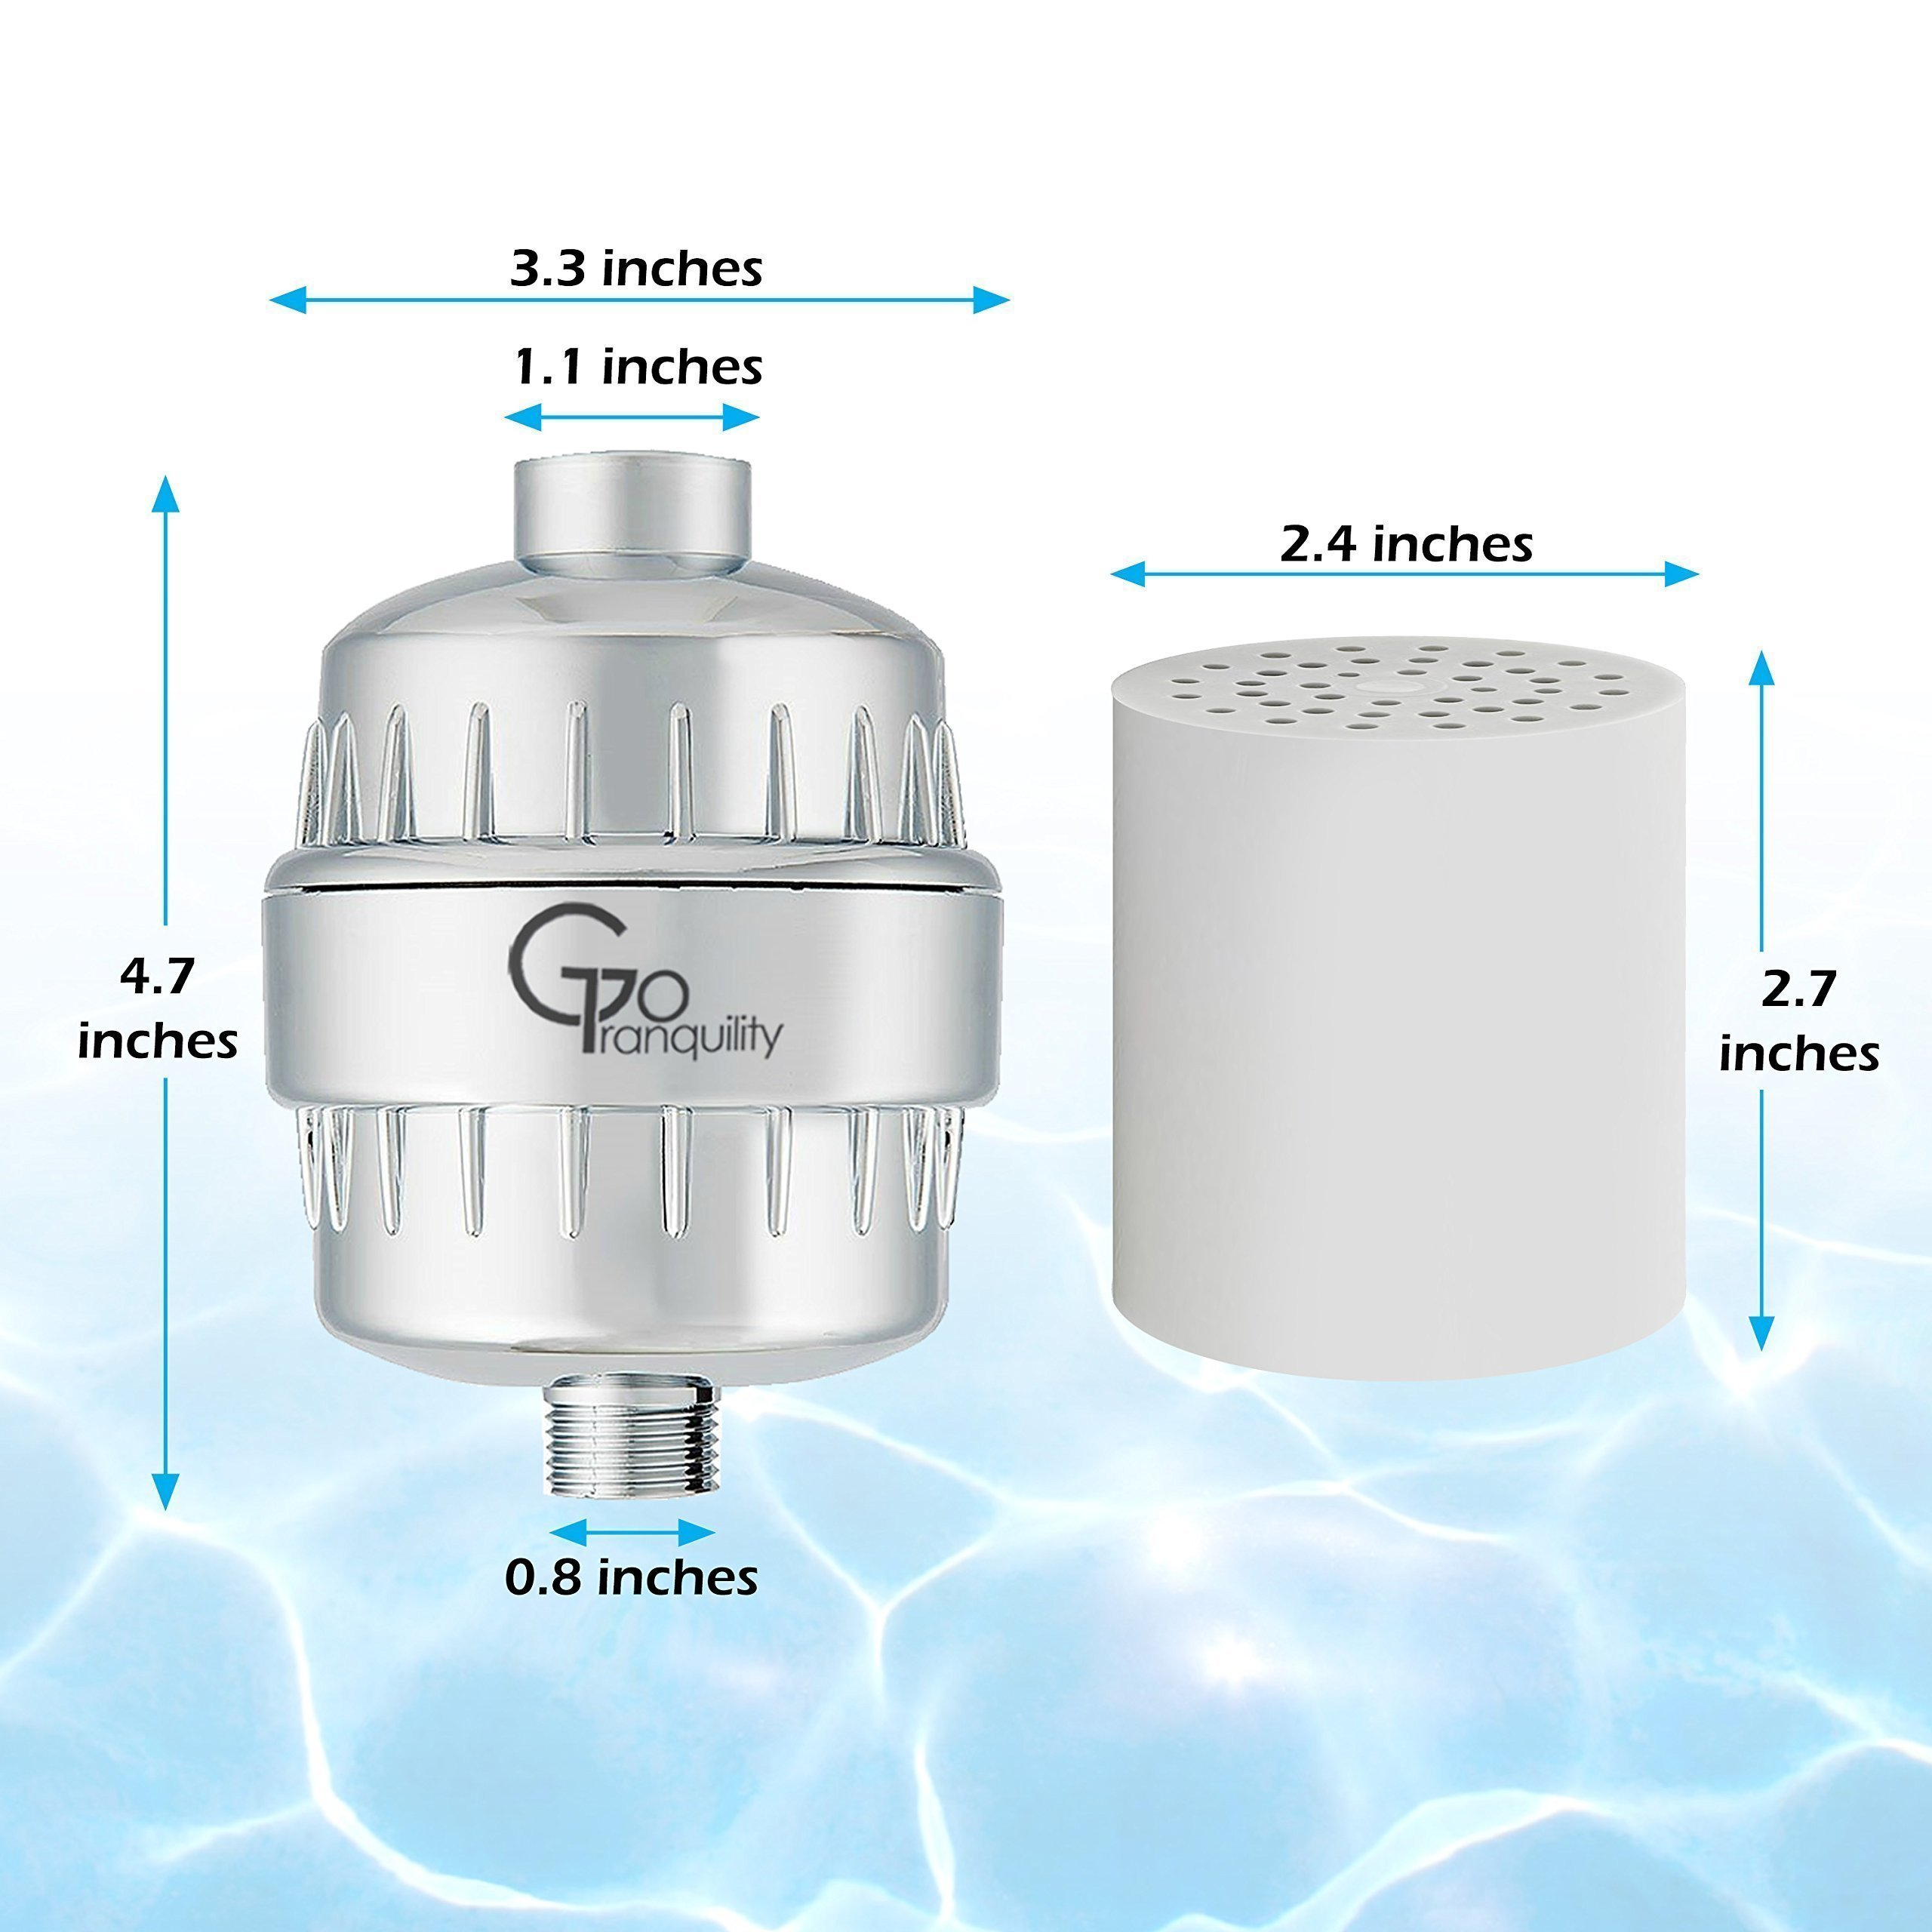 Shower Head Chlorine Filter & Hard Water Softener With Replacement Cartridge Prevents Hair & Skin Dryness Universal Showerhead System by GoTranquility (Image #7)